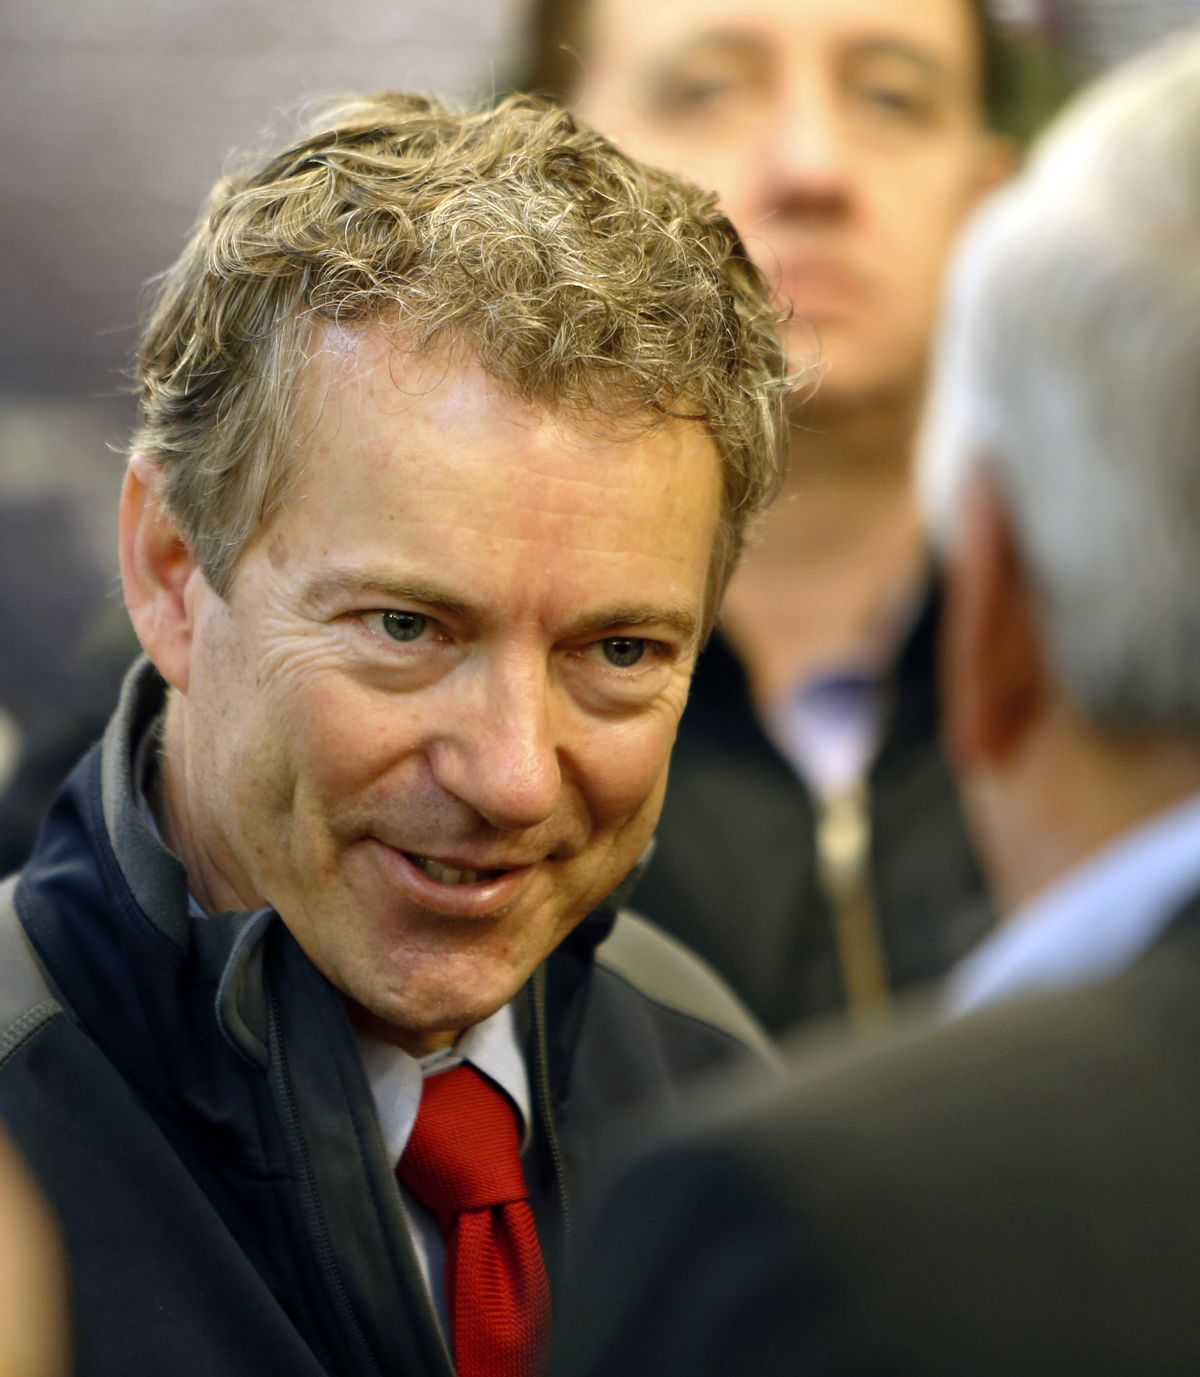 U.S. Sen. Rand Paul, R-Ky., meets with members of the Londonderry Fish and Game Club, Wednesday, Jan. 14, 2015, in Litchfield, N.H. (AP/Jim Cole)